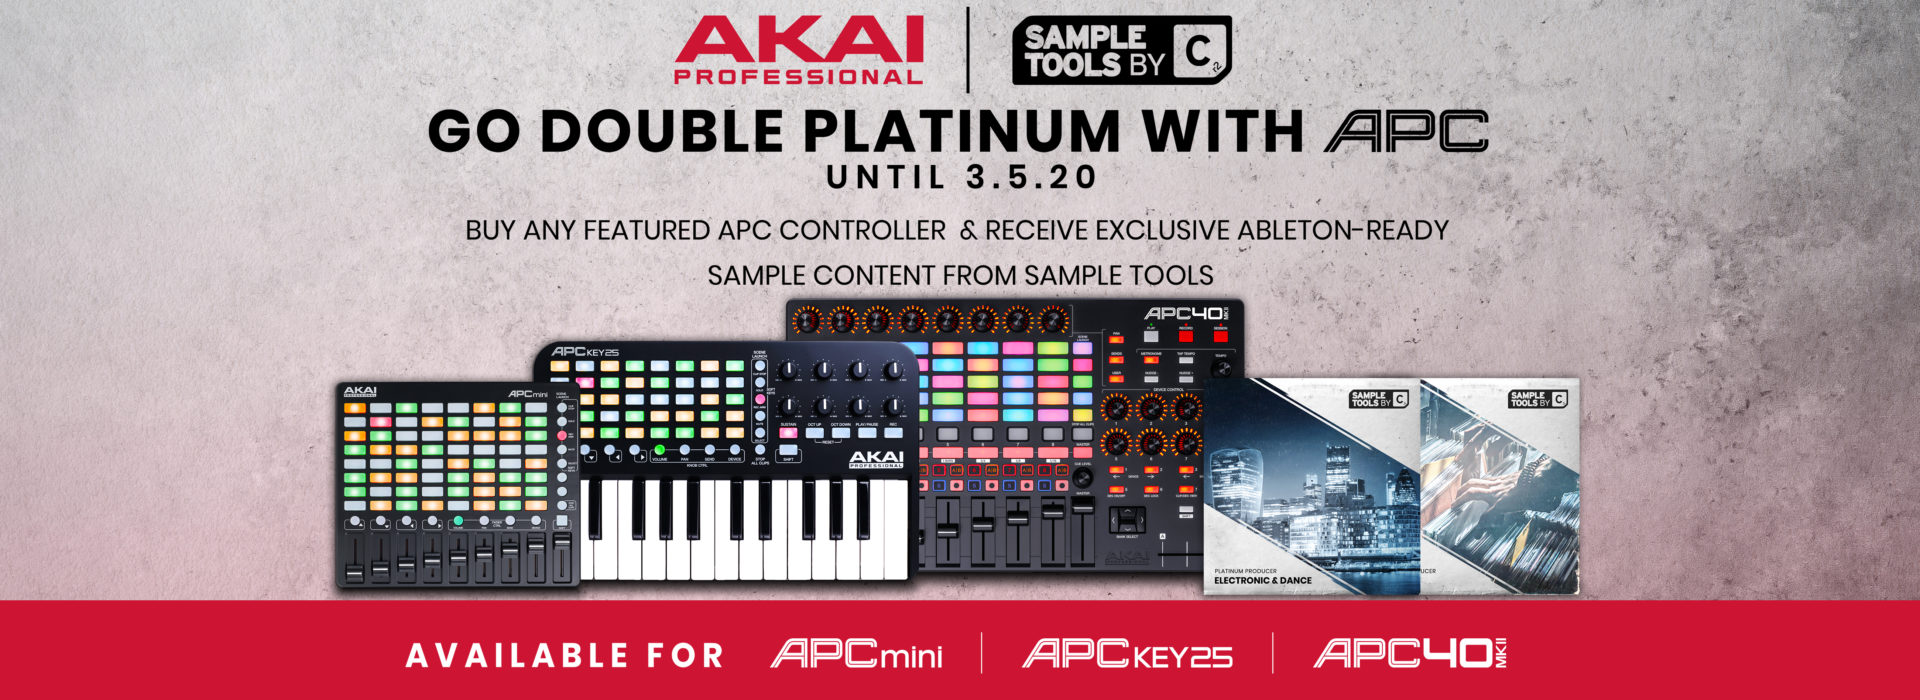 PLATINUM PRODUCER WITH APC (AKAI PROFESSIONAL)